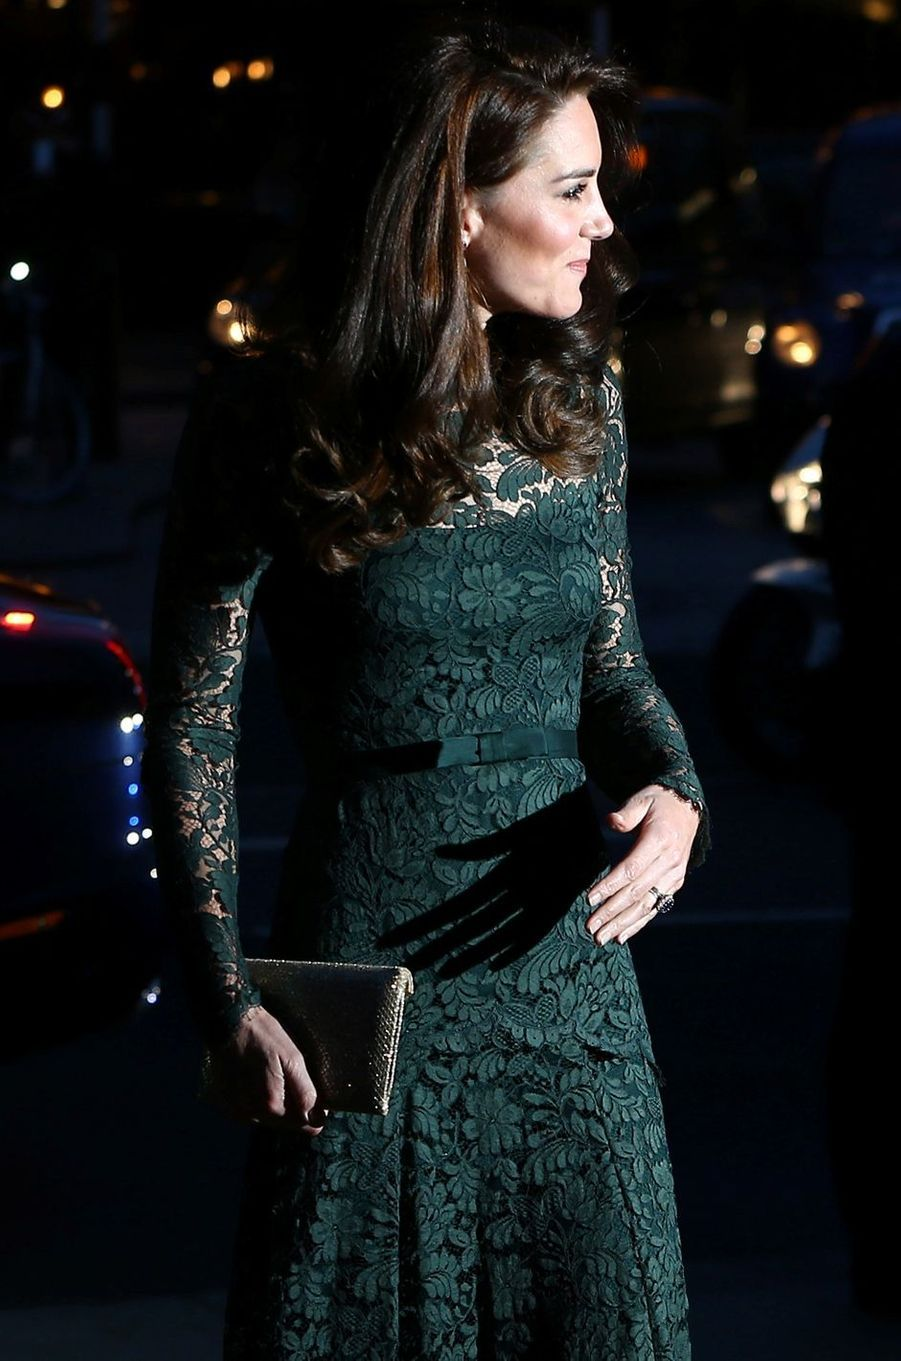 La duchesse de Cambridge, née Kate Middleton, glamour à Londres le 28 mars 2017